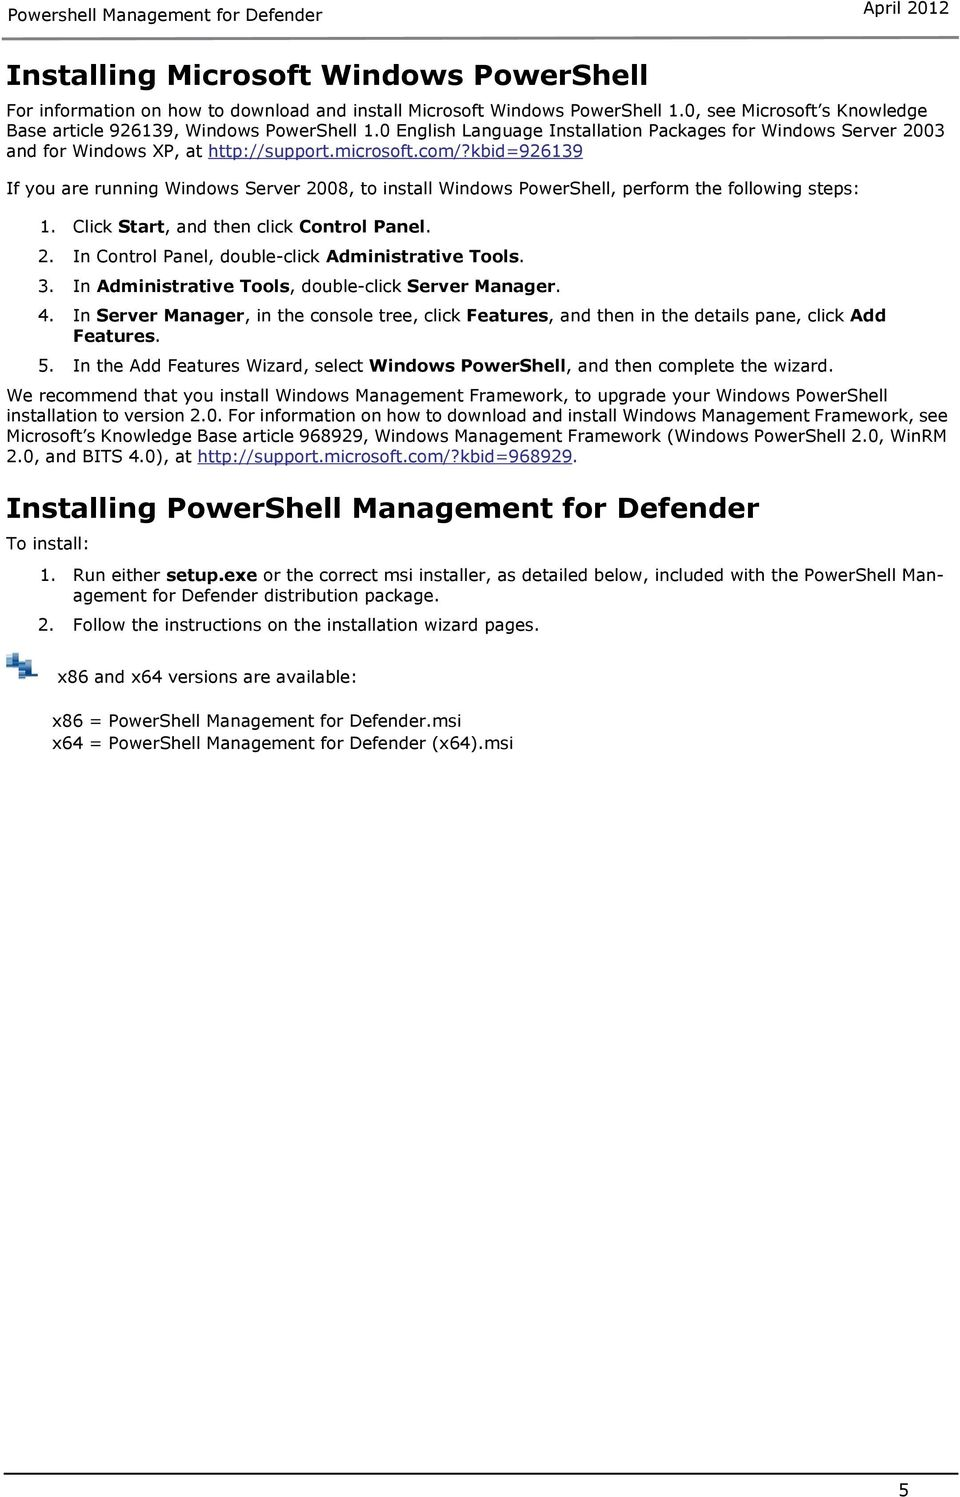 Powershell Management for Defender - PDF